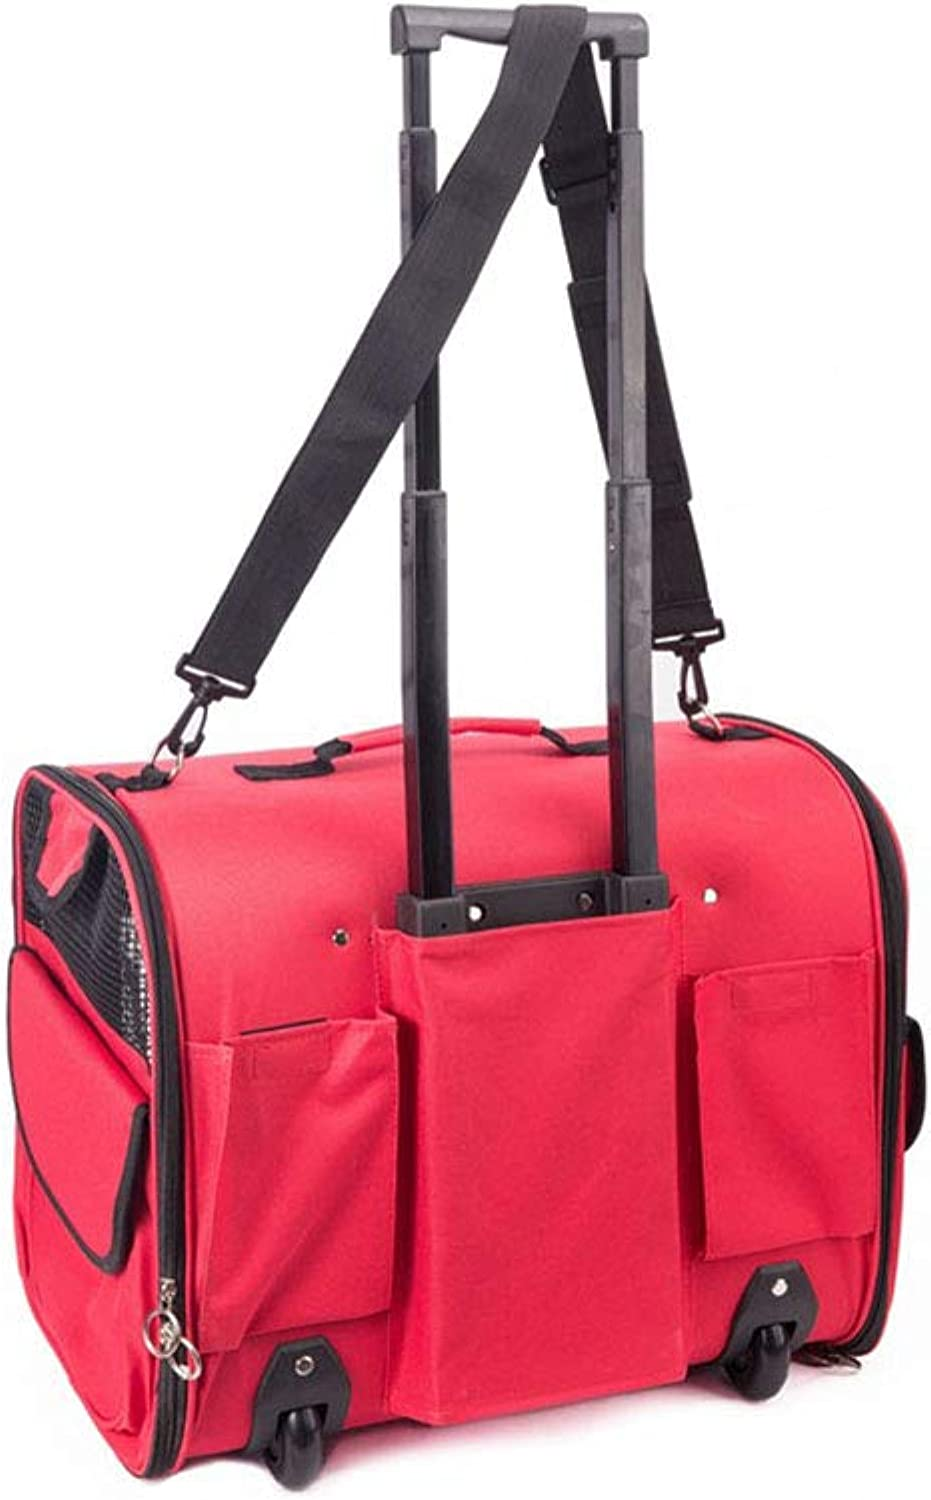 Pet Trolley Case, Multifunction Extended Edition Warm Breathable Lightweight Pet Travel Bag Roller Trolley Case, Pet Supplies,Red